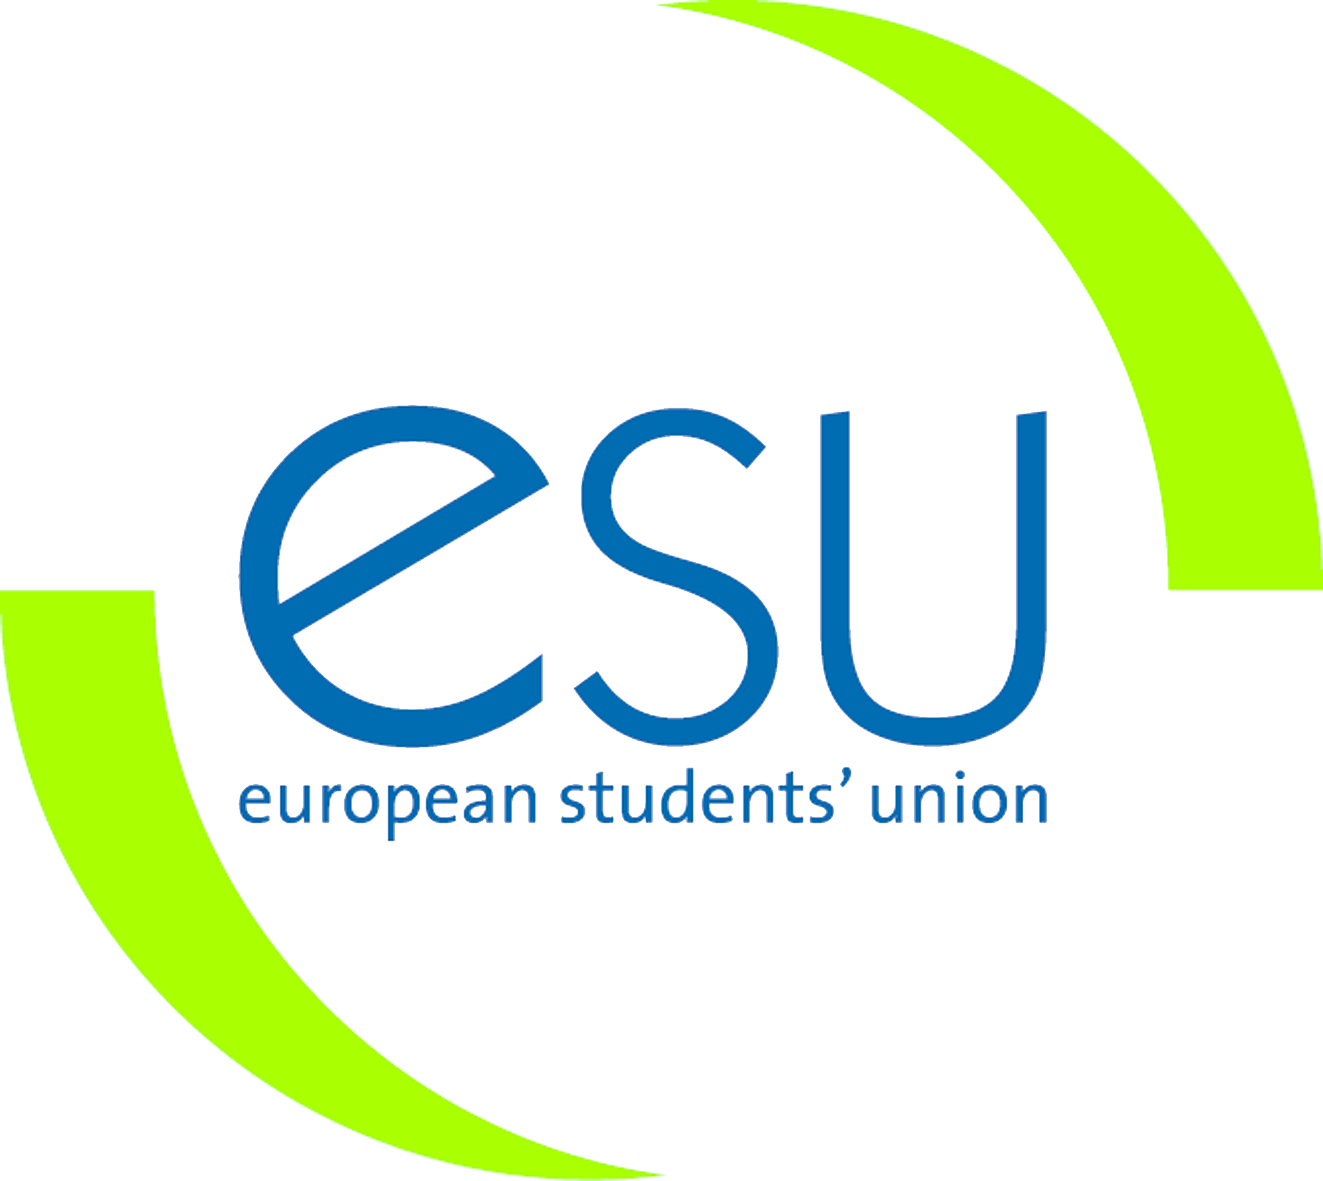 Logo The European Students' Union (ESU)